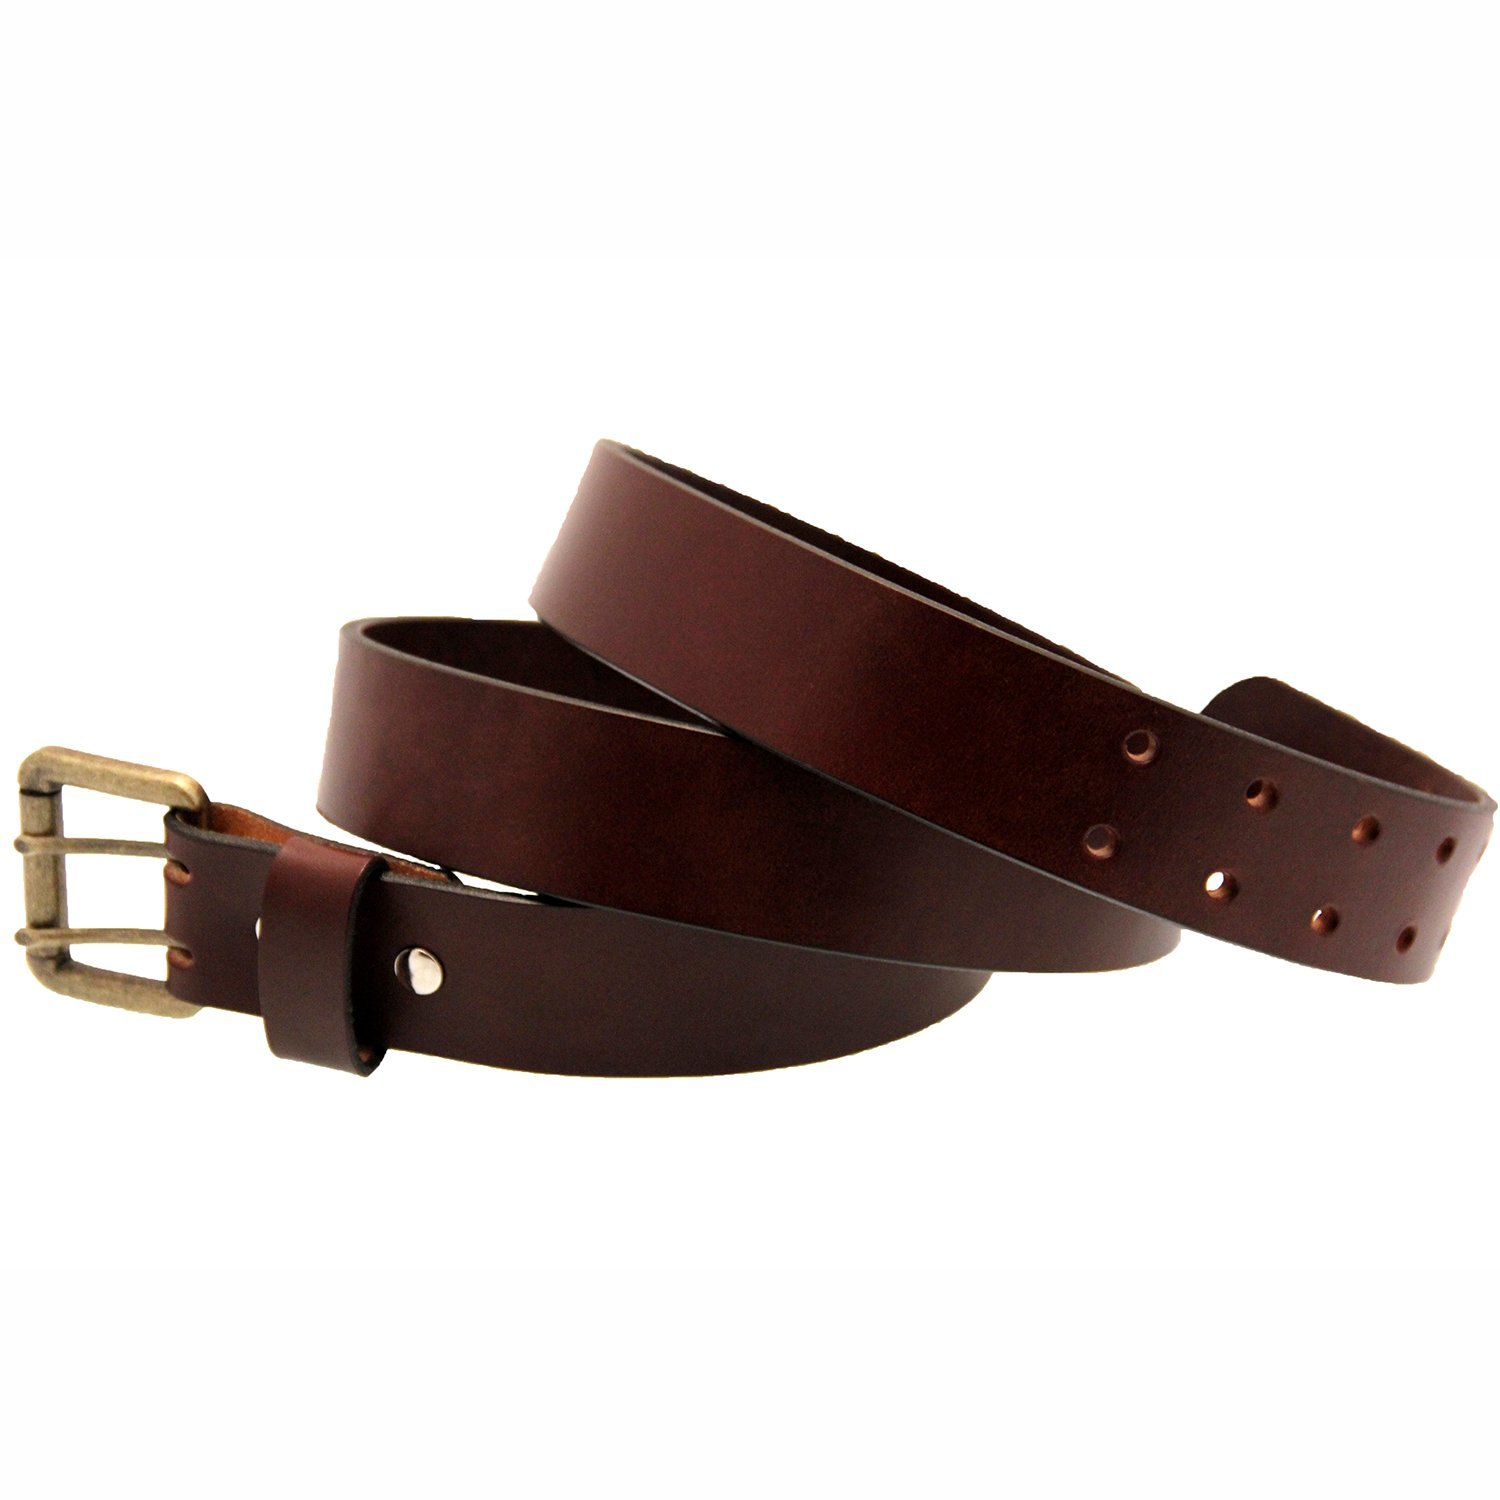 Orion Leather 1 1//2 Sunset Brown Harness Leather Belt Double Hole